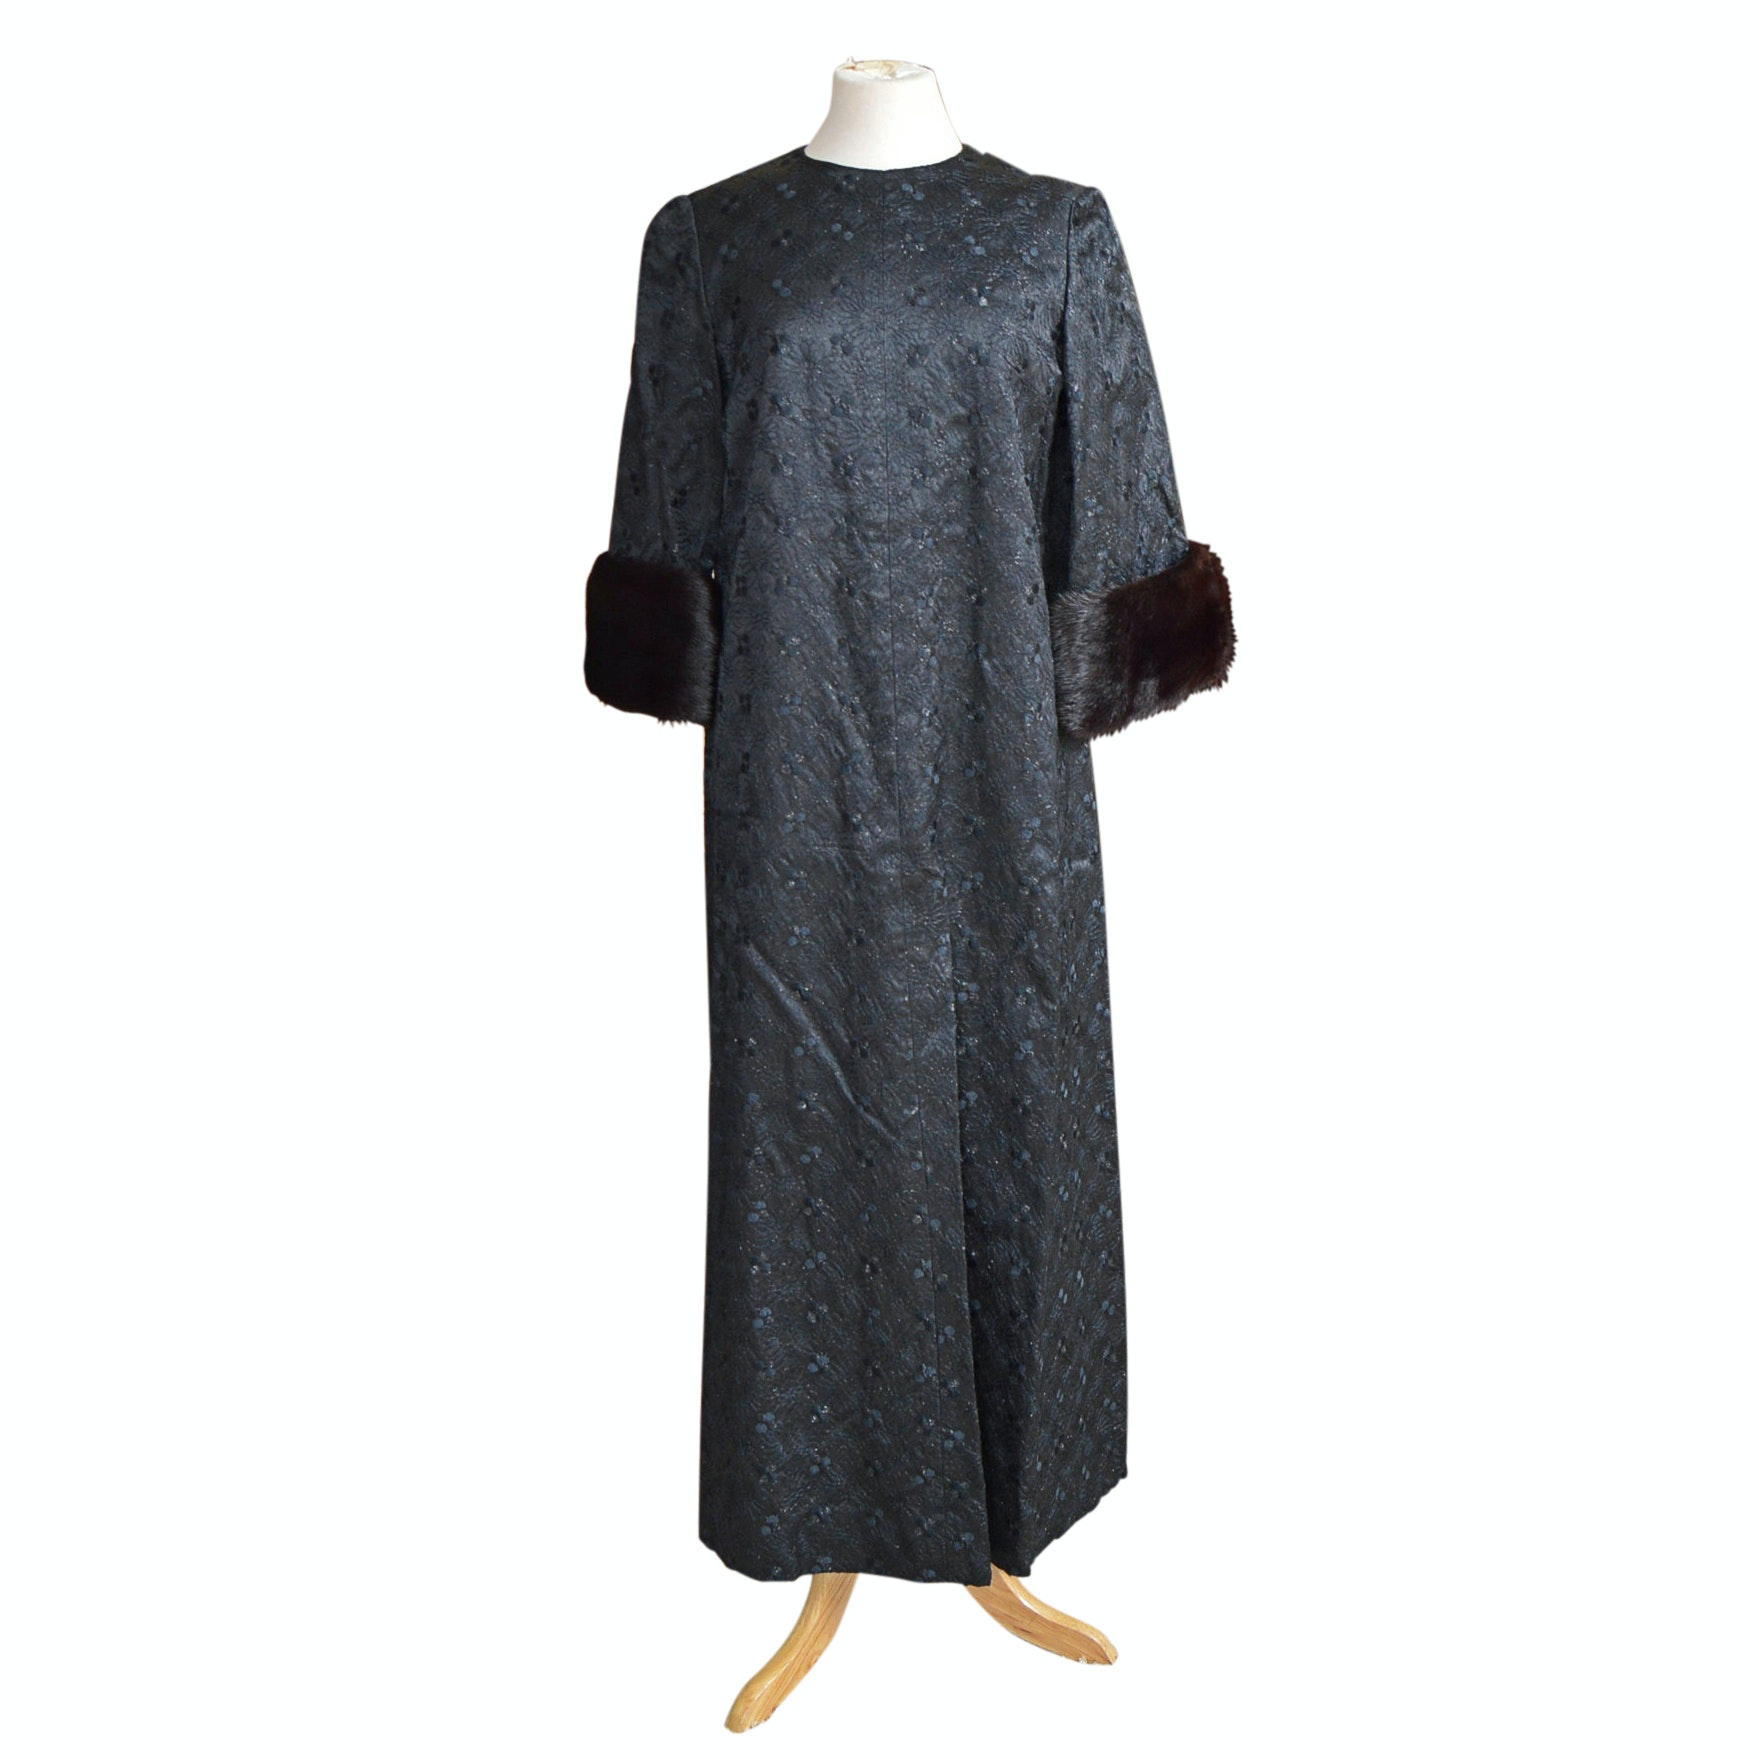 Vintage Black Brocade Caftan with Dark Brown Mink Cuffs